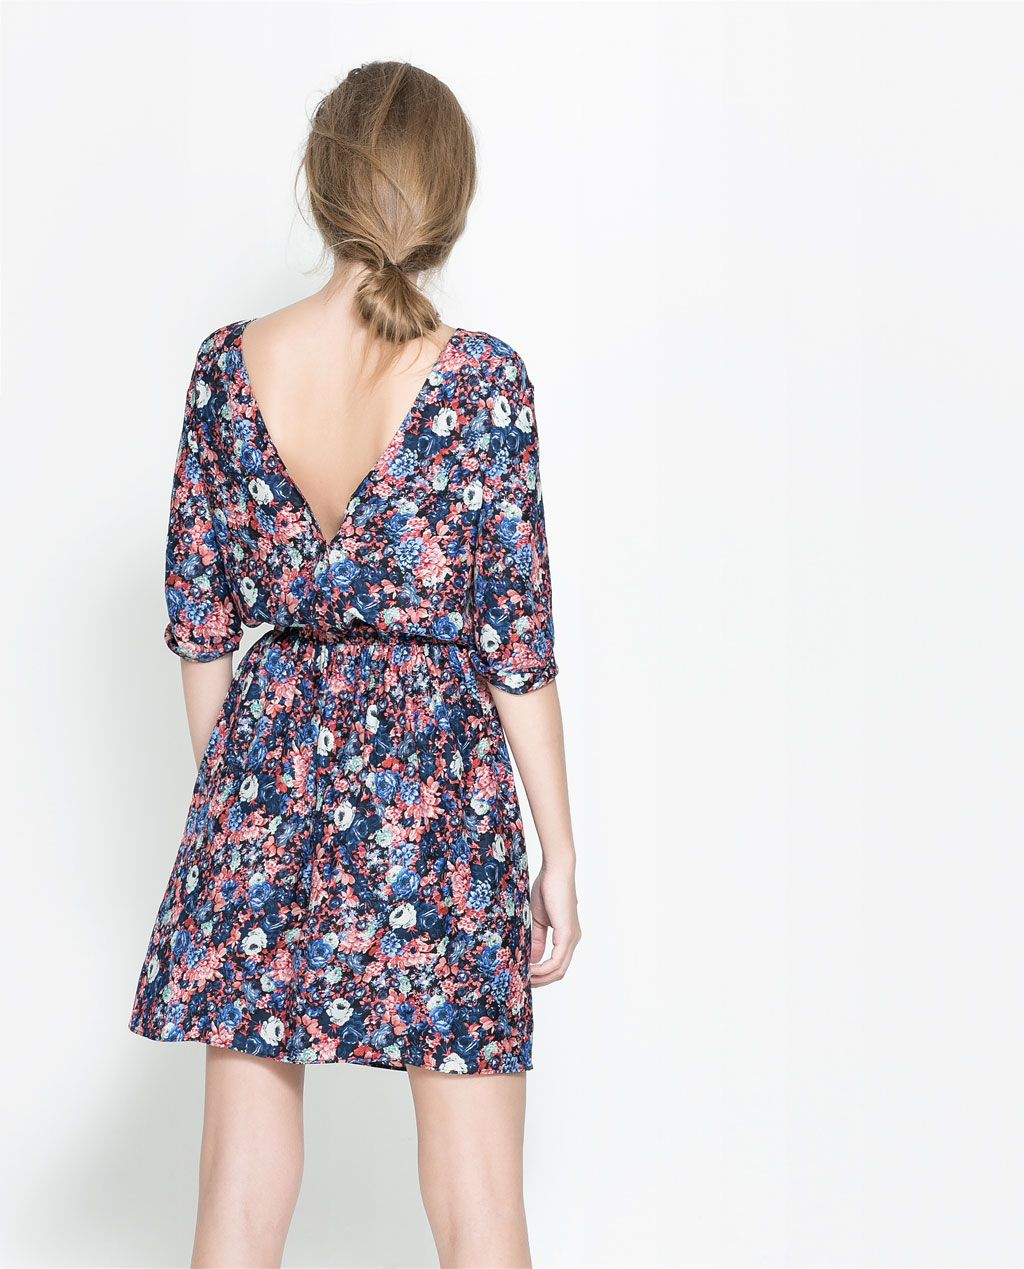 FLORAL DRESS WITH BUTTONS AT THE BACK